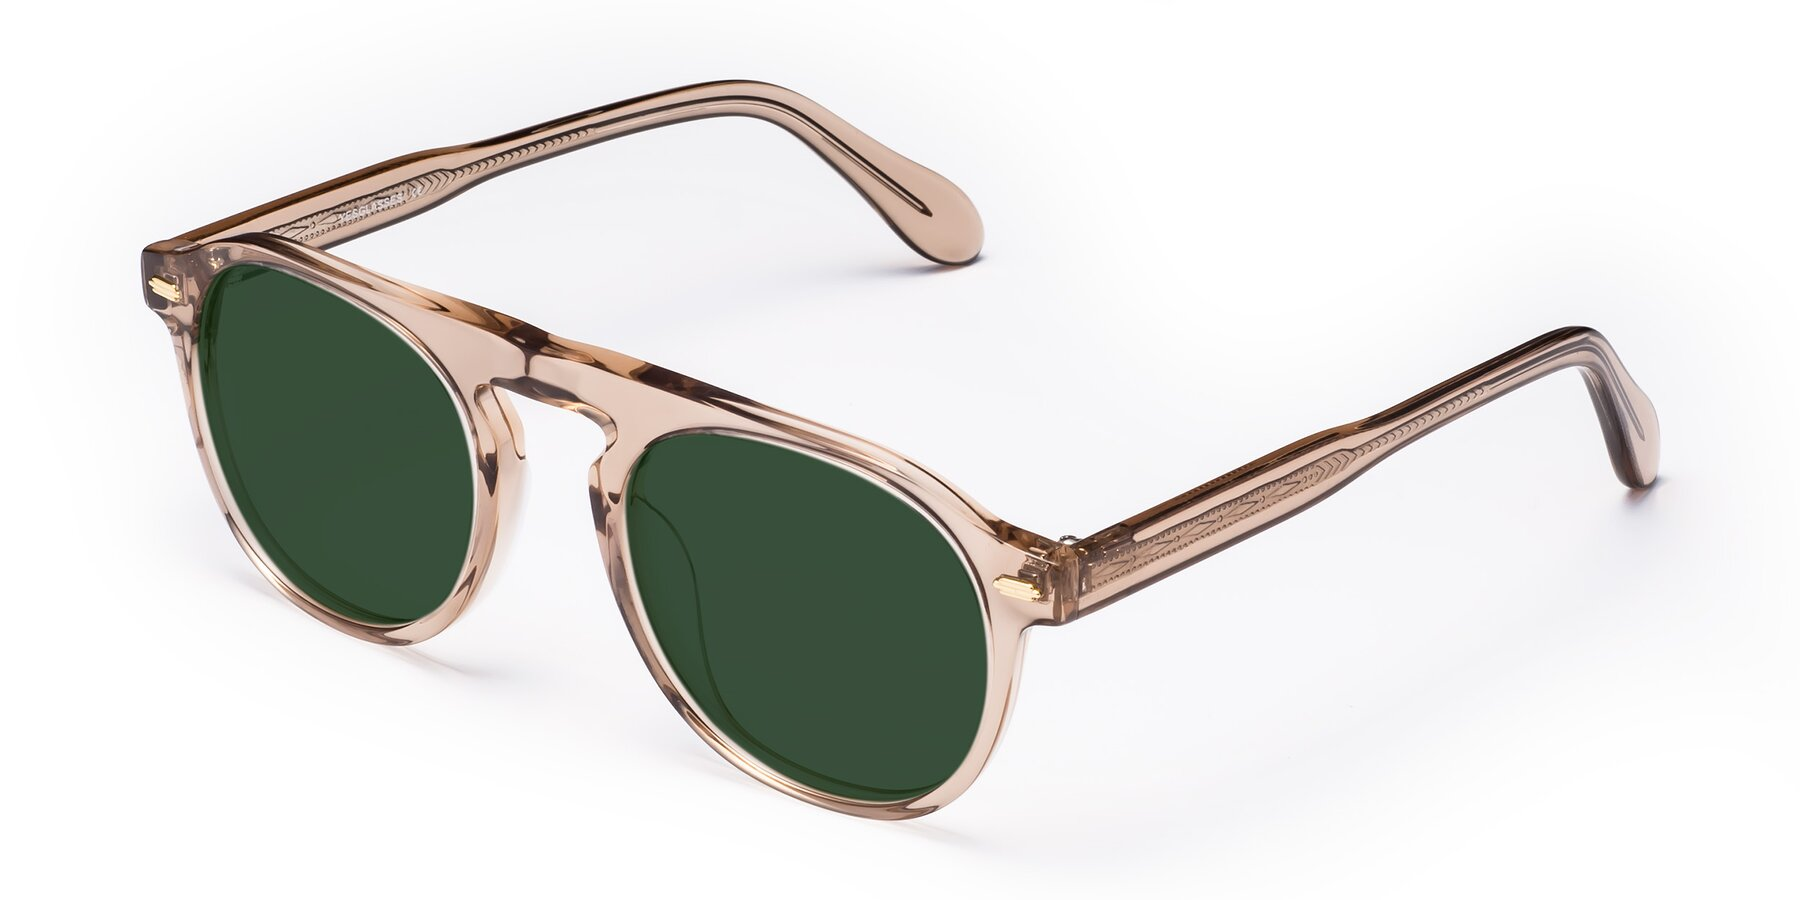 Angle of Mufasa in light Brown with Green Tinted Lenses